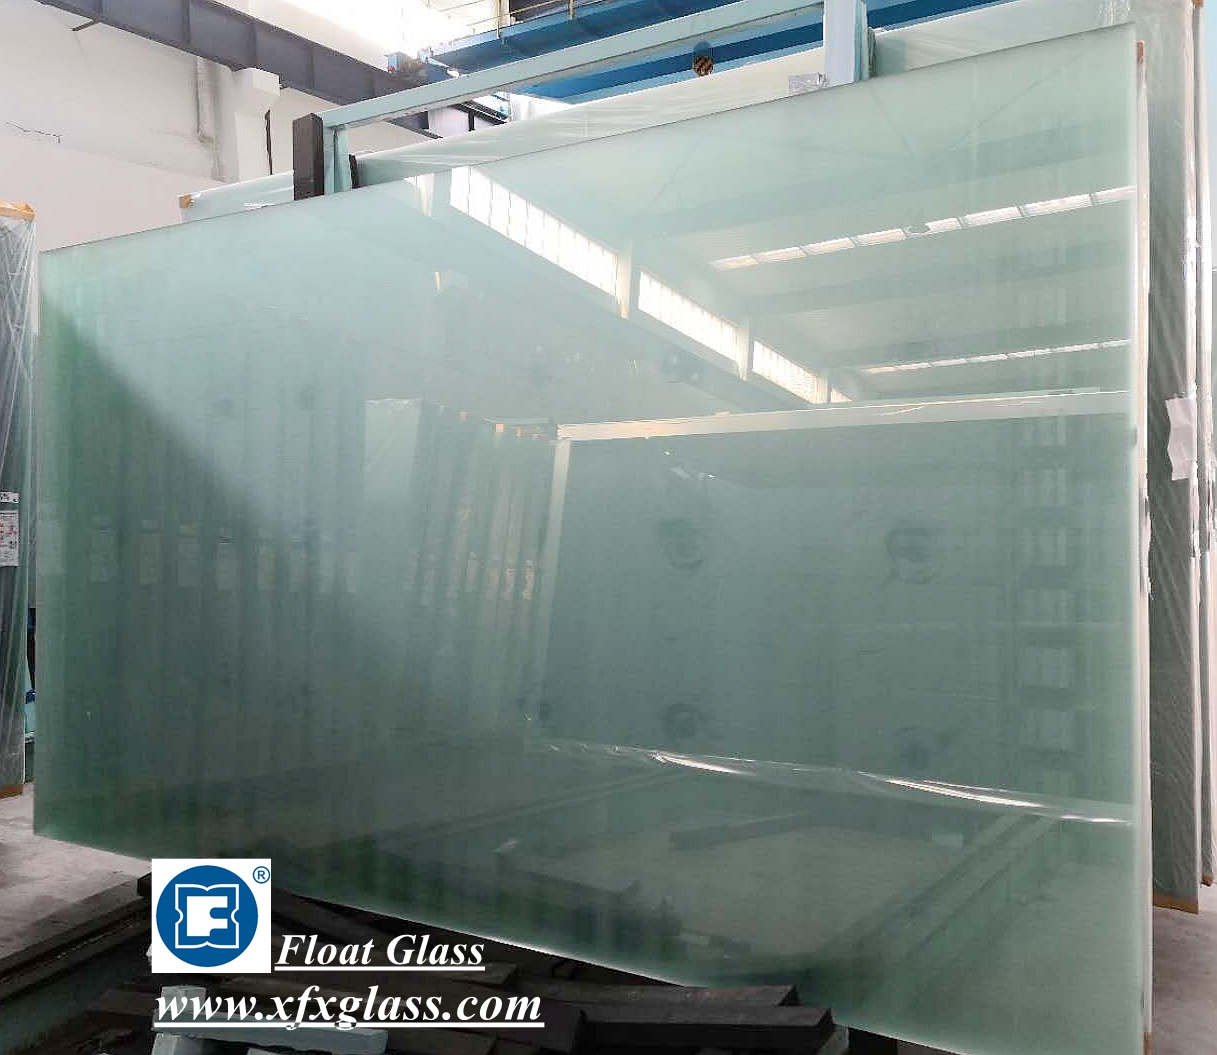 Hot Sale Clear Float Glass use for Tempered glass Laminated glass etc.